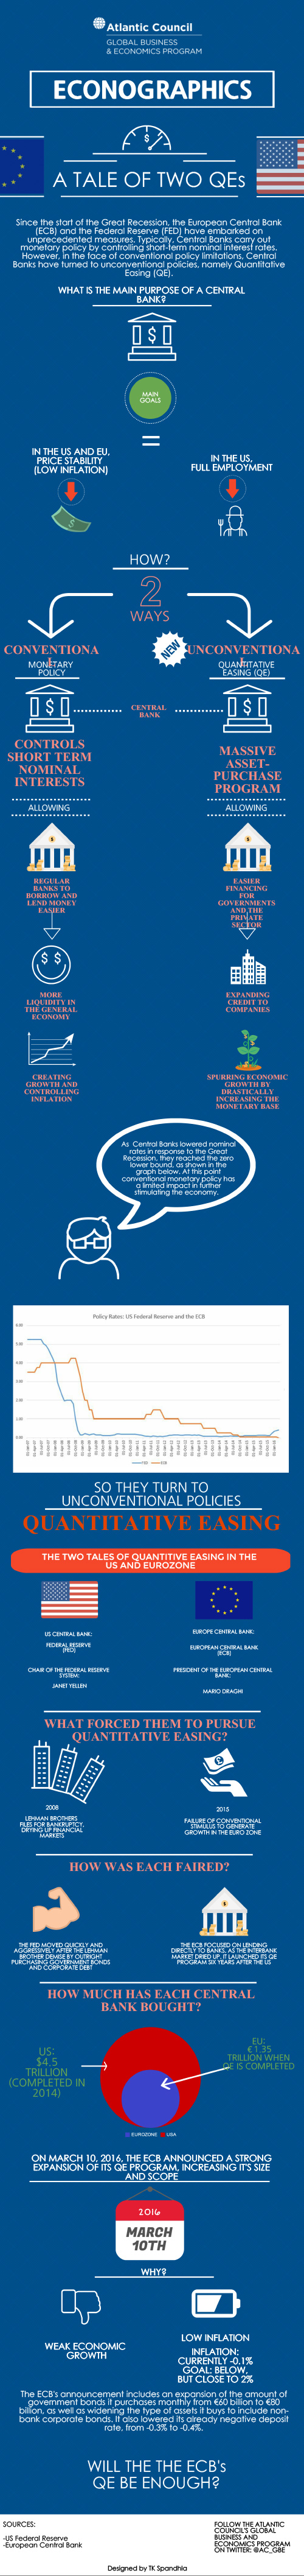 econographic-tale-of-two-qe-s